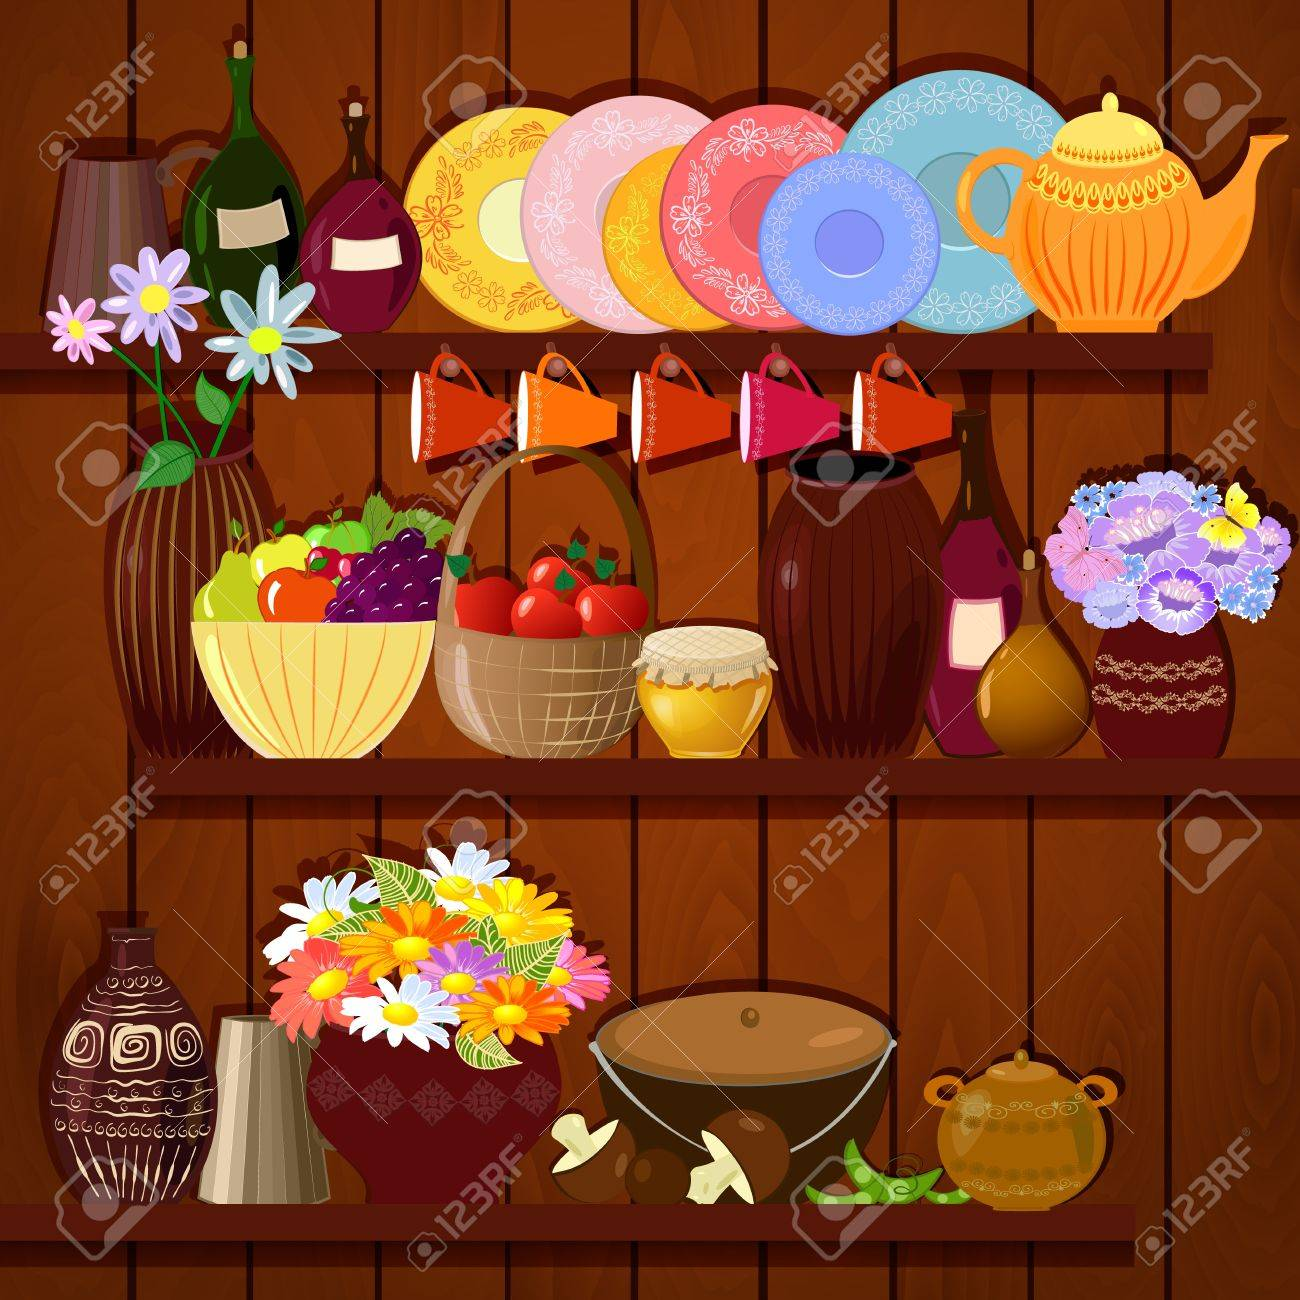 Shelves with dishes and food Stock Vector - 17680127